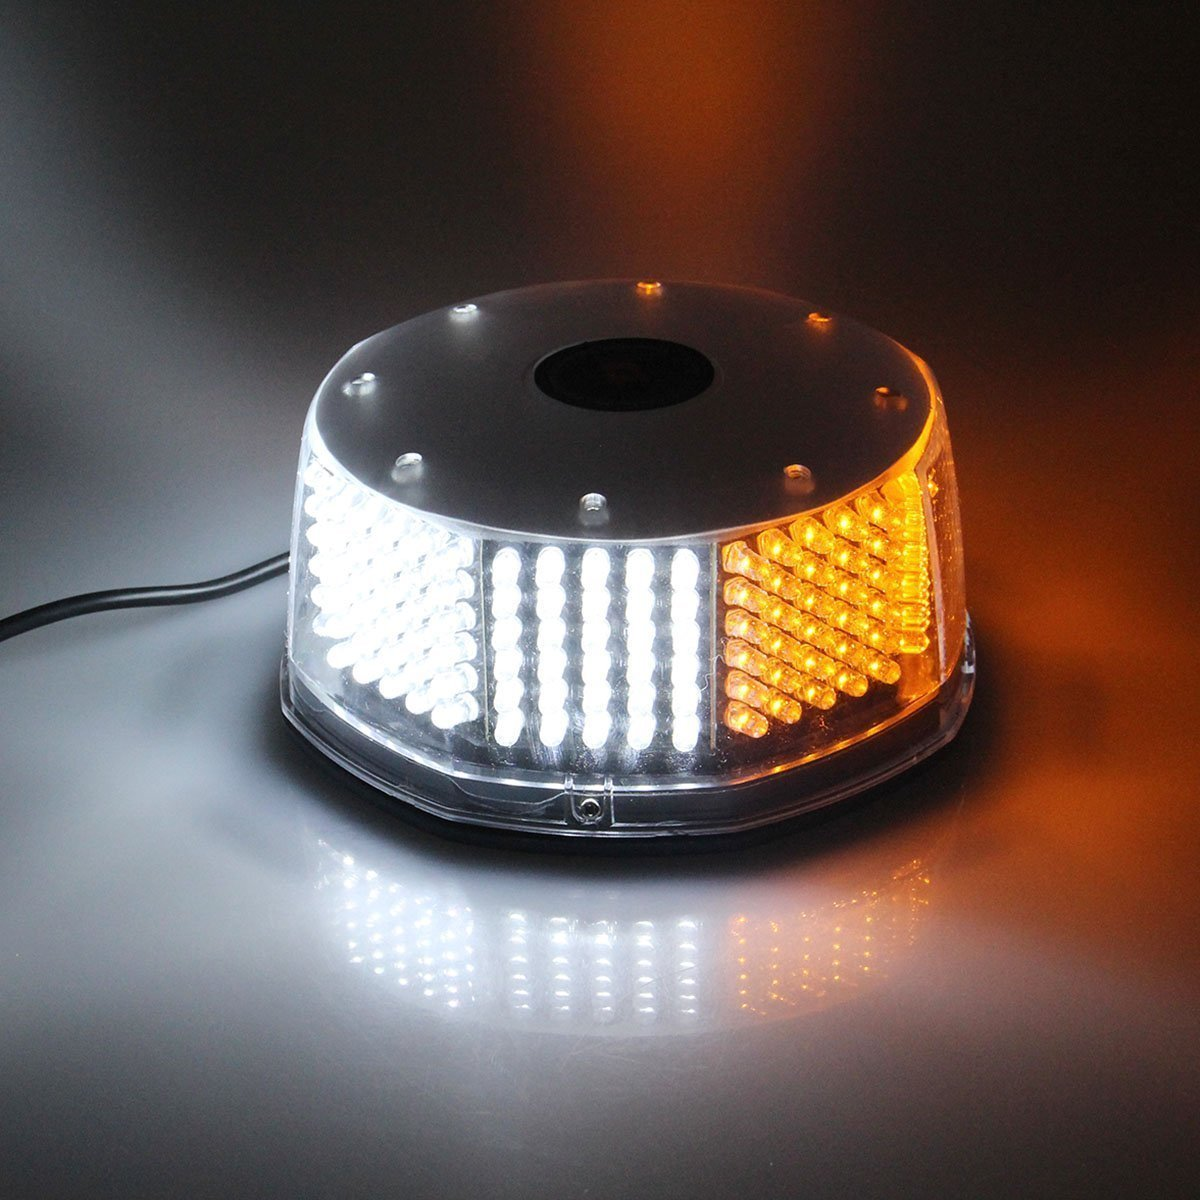 Lanxi 240 LED Lumi/ère Stroboscopique Gyrophare pour Voiture avec Fixation Magn/étique Camion Lumi/ères Davertissement Feux Stroboscope Flash avec 12v Plug Allume-cigare